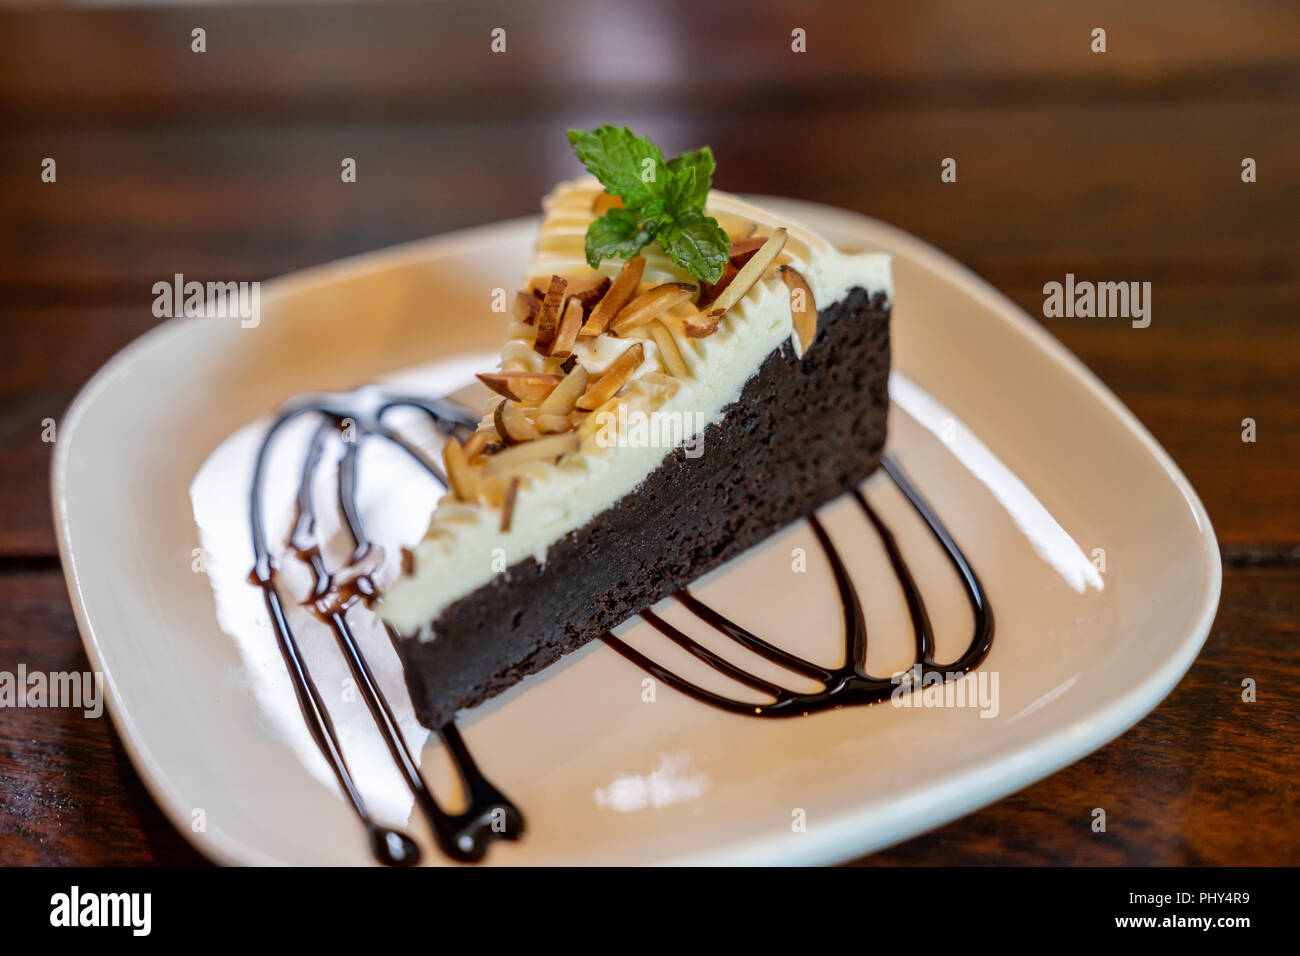 Close up chocolate cake homemade on wooden table Stock Photo